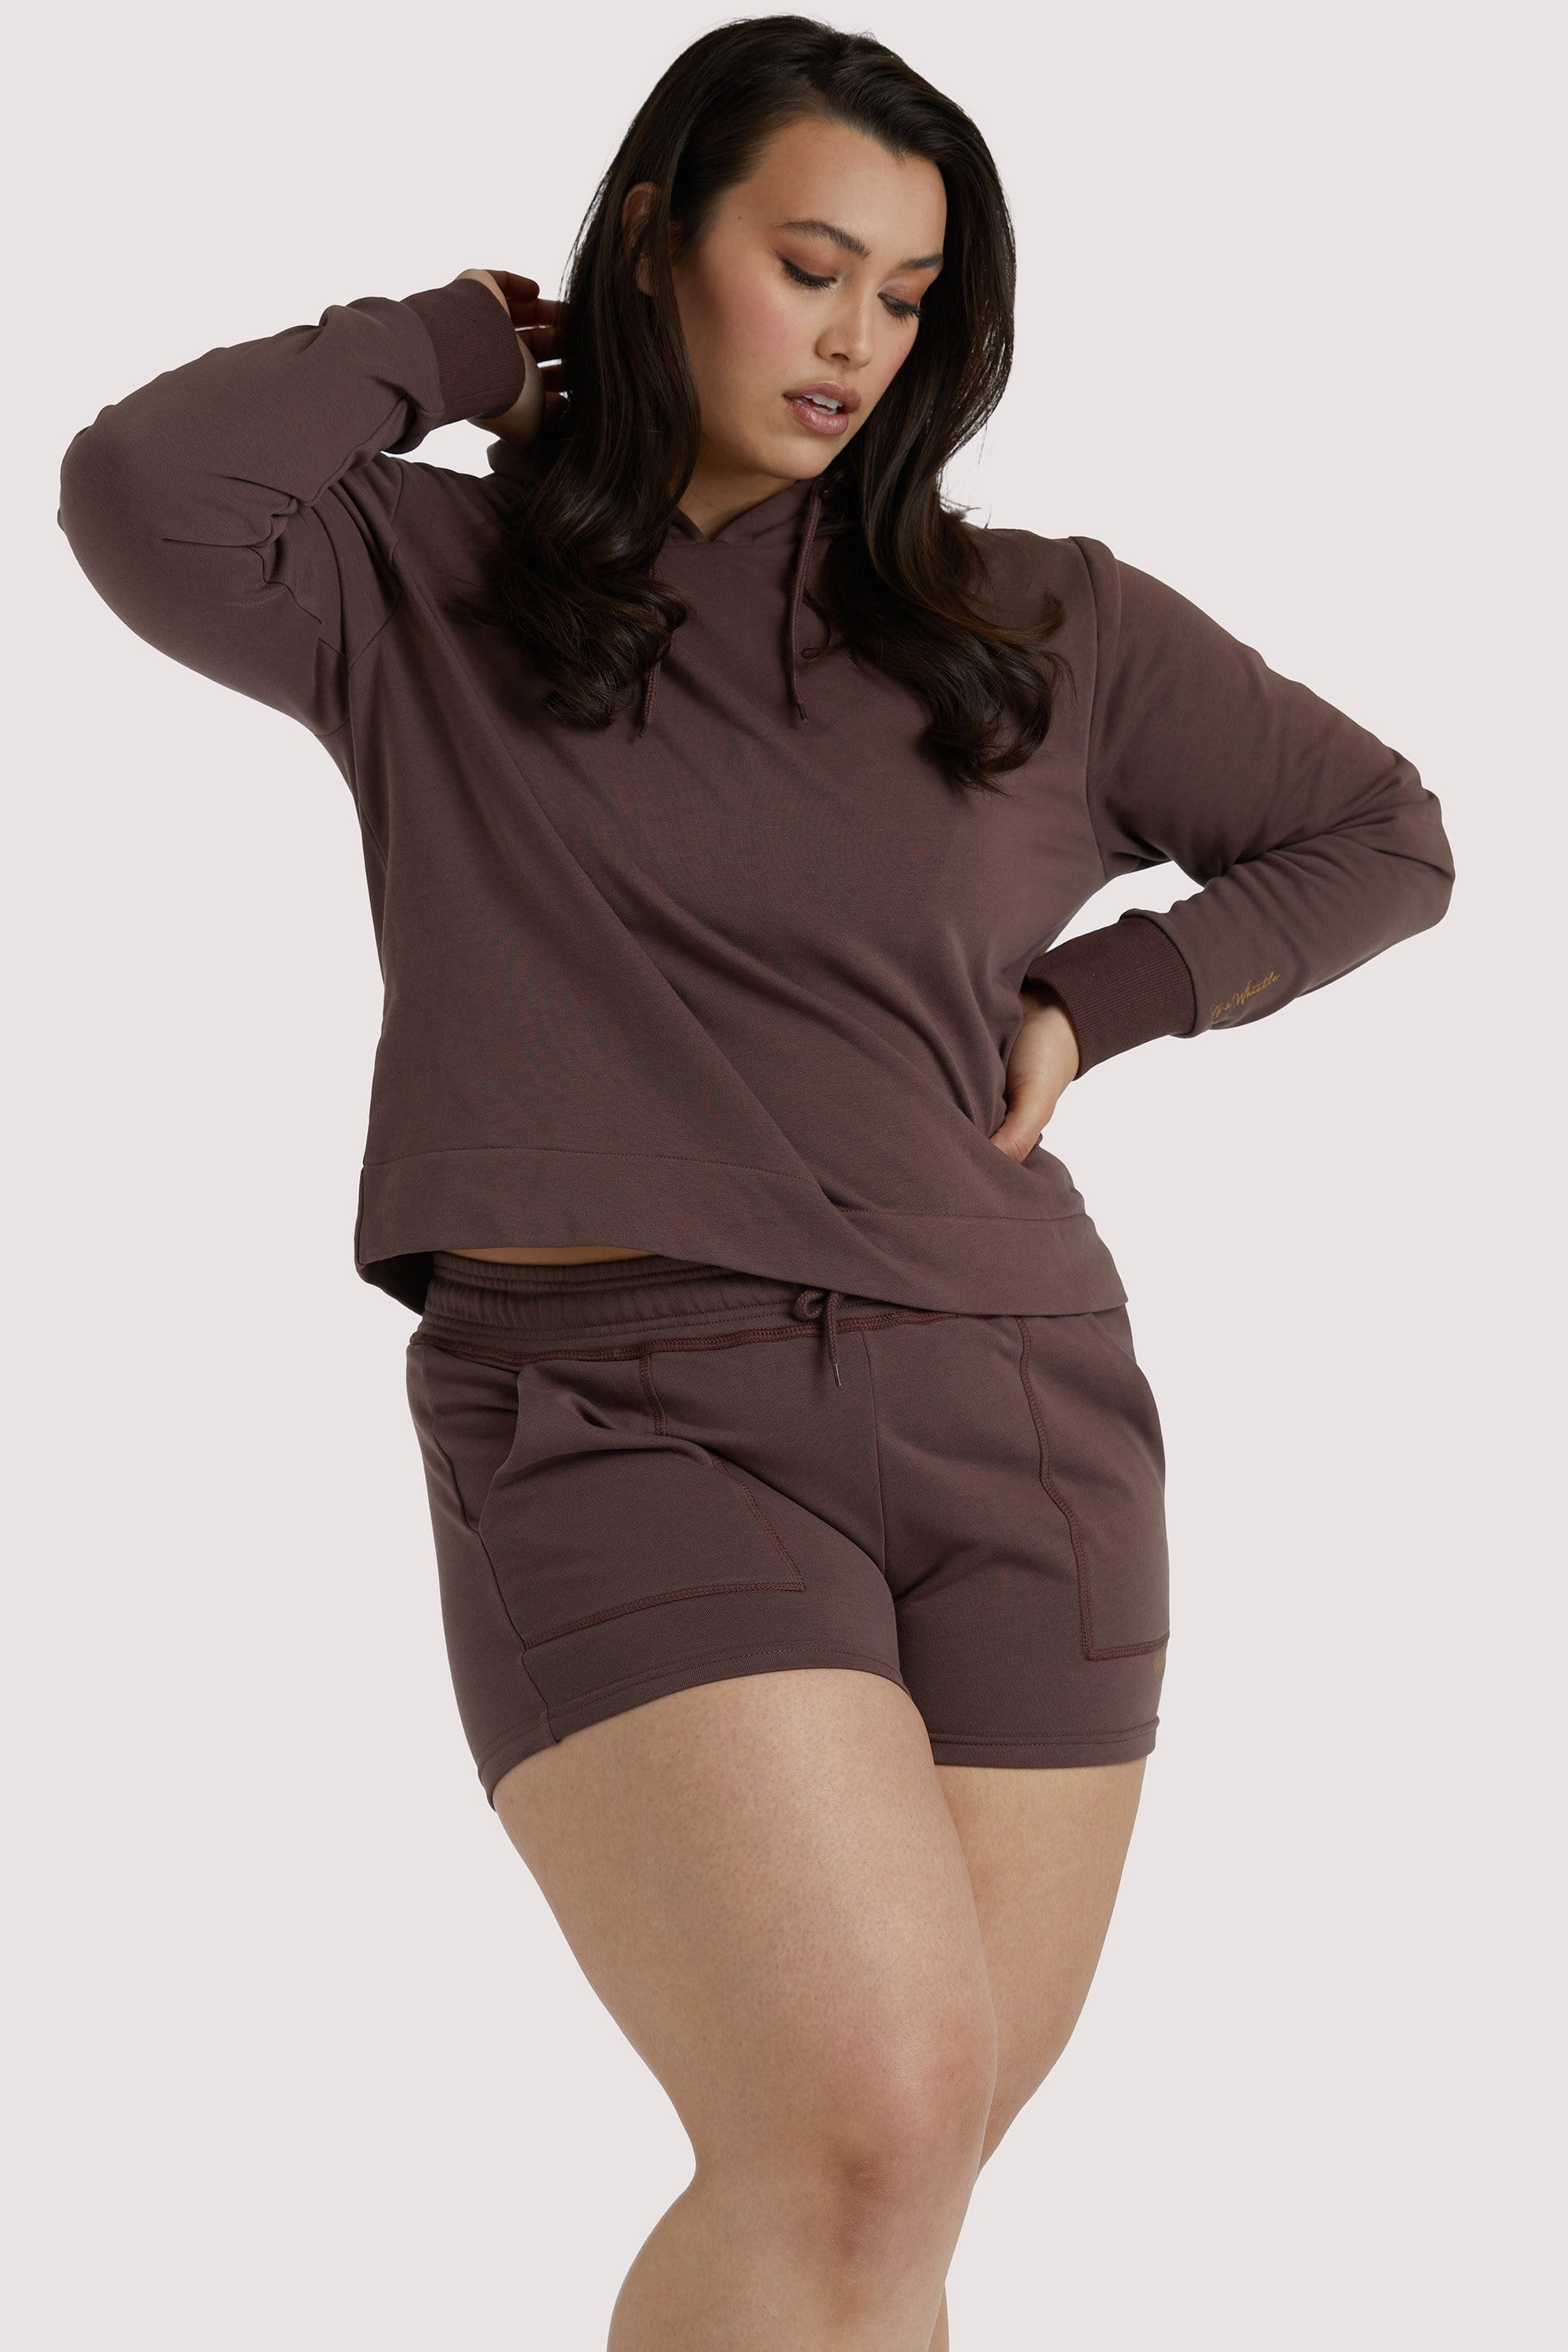 Wolf & Whistle Brown Curve Hooded Top UK 18 / US 14